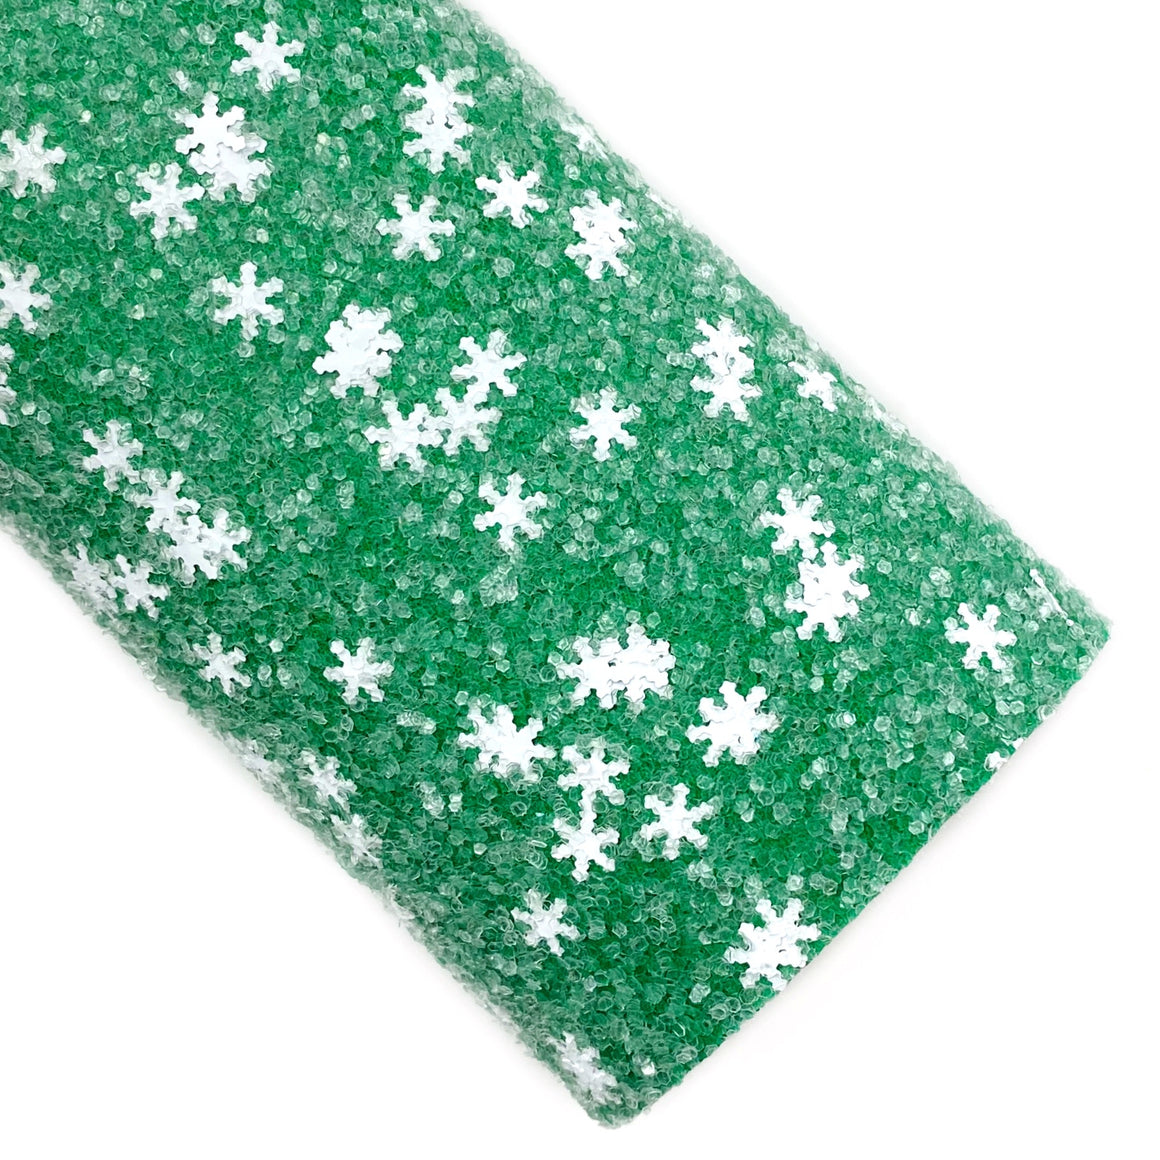 Evergreen Ice & Snow Chunky Glitter